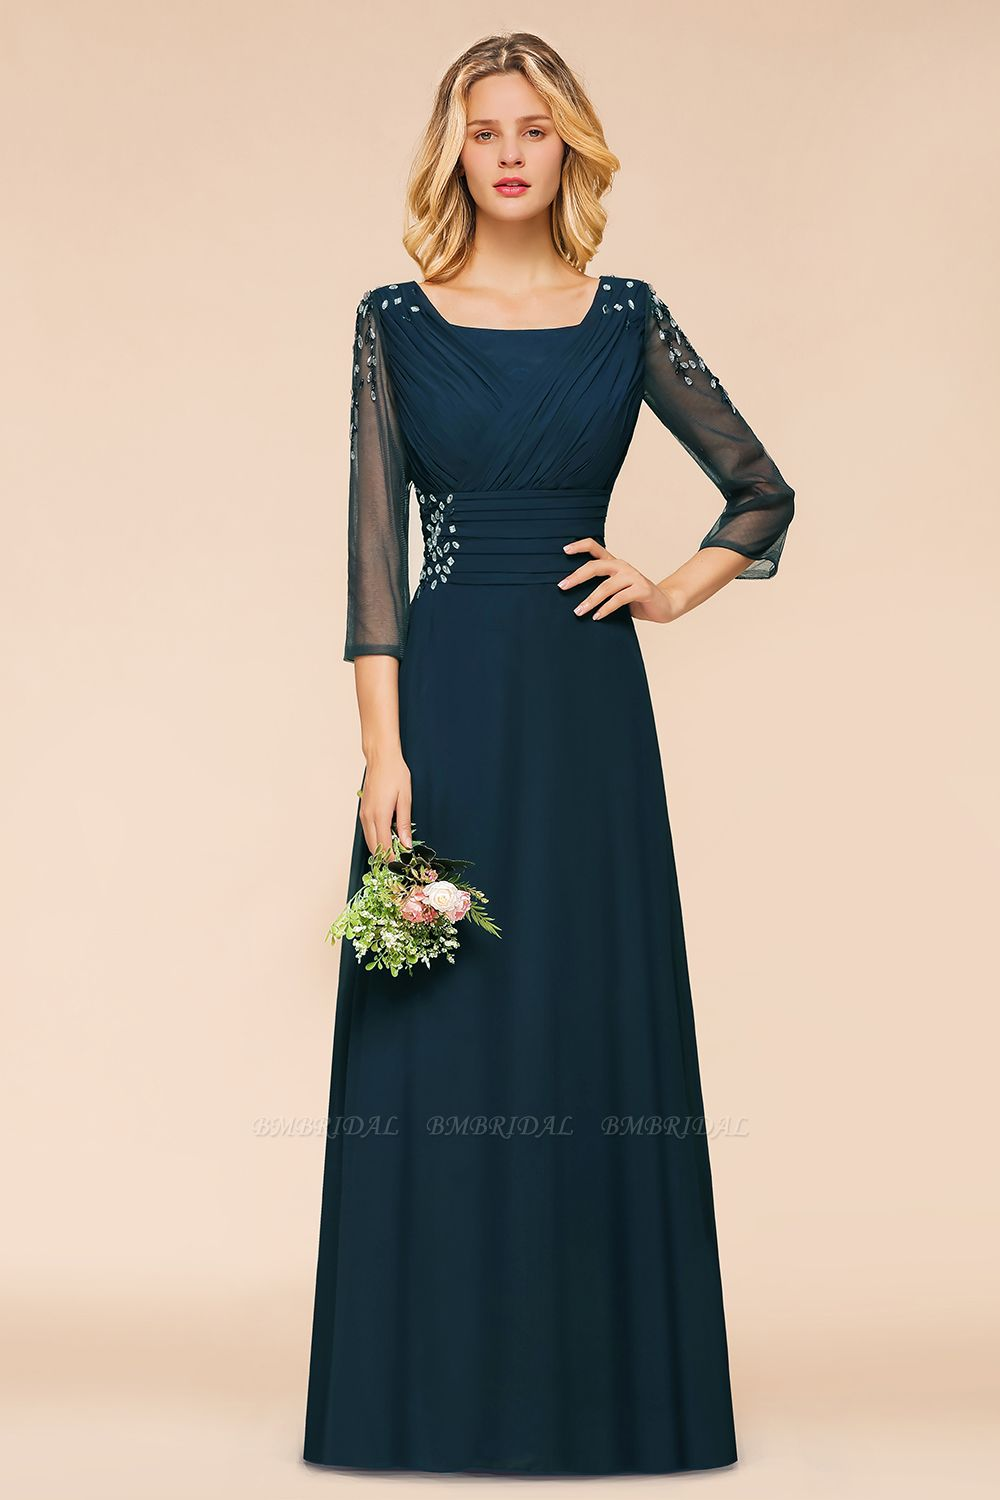 BMbridal Elegant 3/4 Sleeves Ruffle Navy Chiffon Bridesmaid Dresses with Beadings